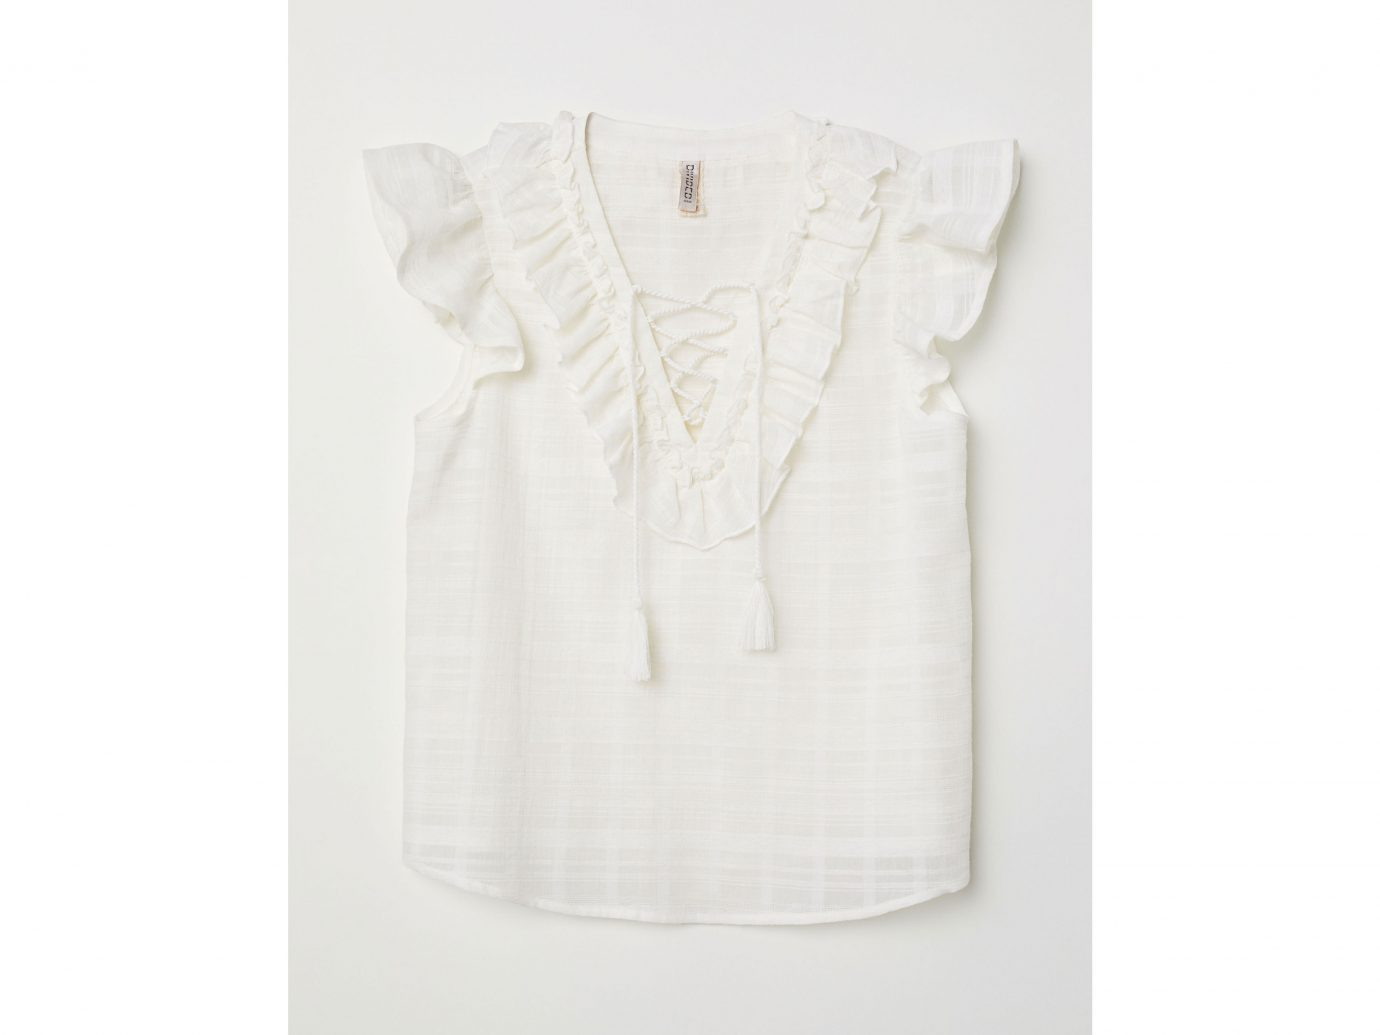 H&M Top with Ruffles